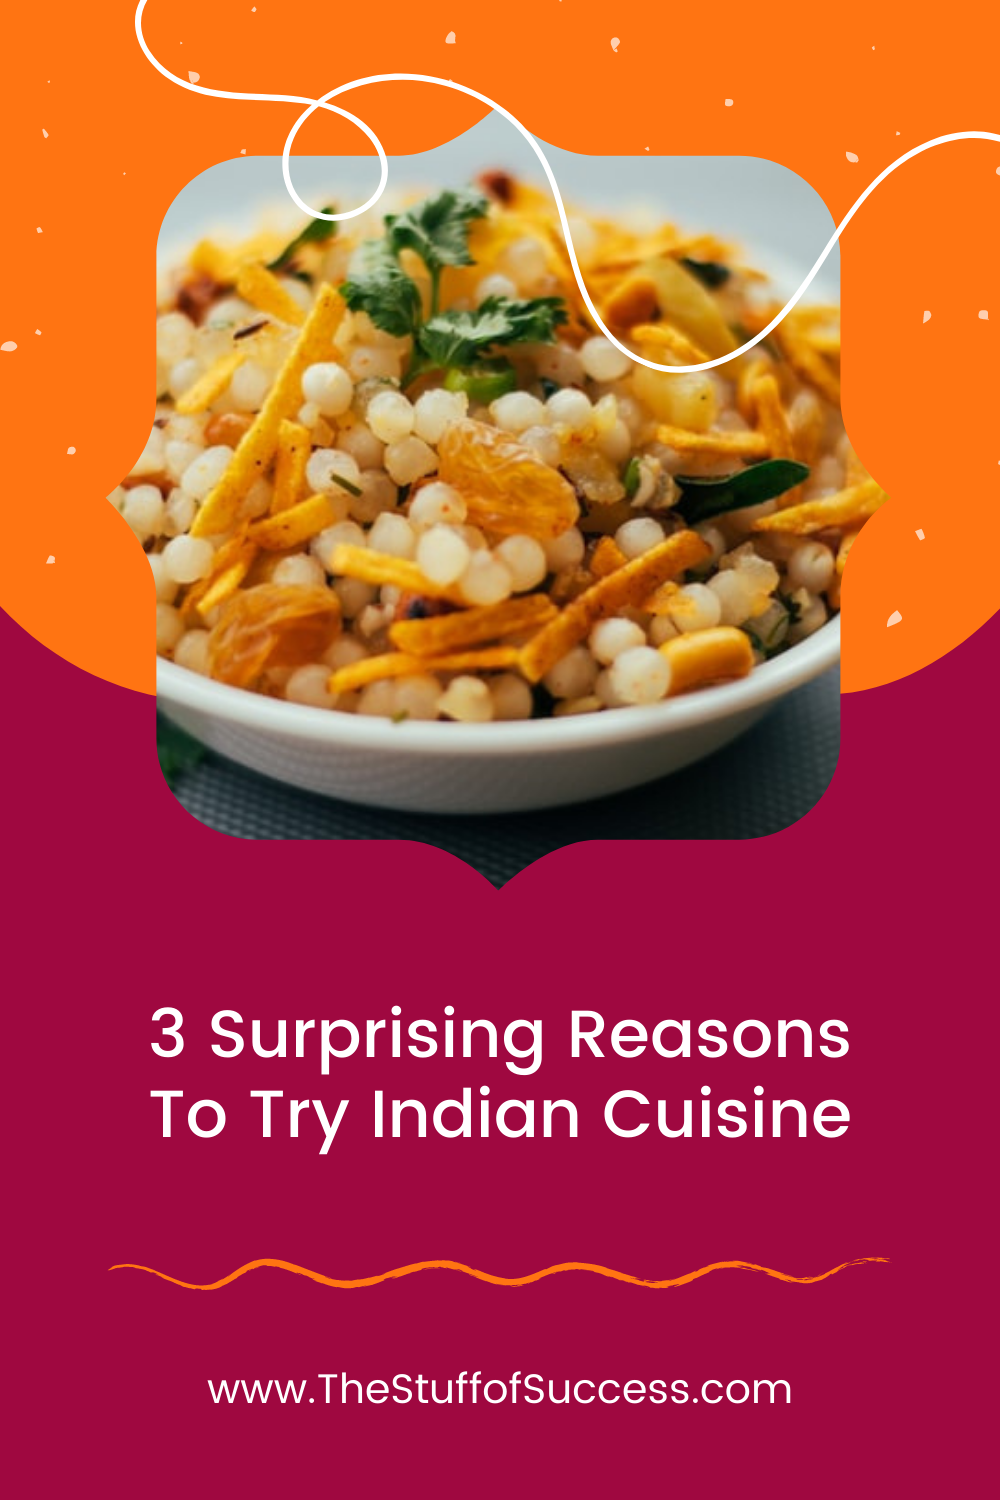 3 Surprising Reasons To Try Indian Cuisine